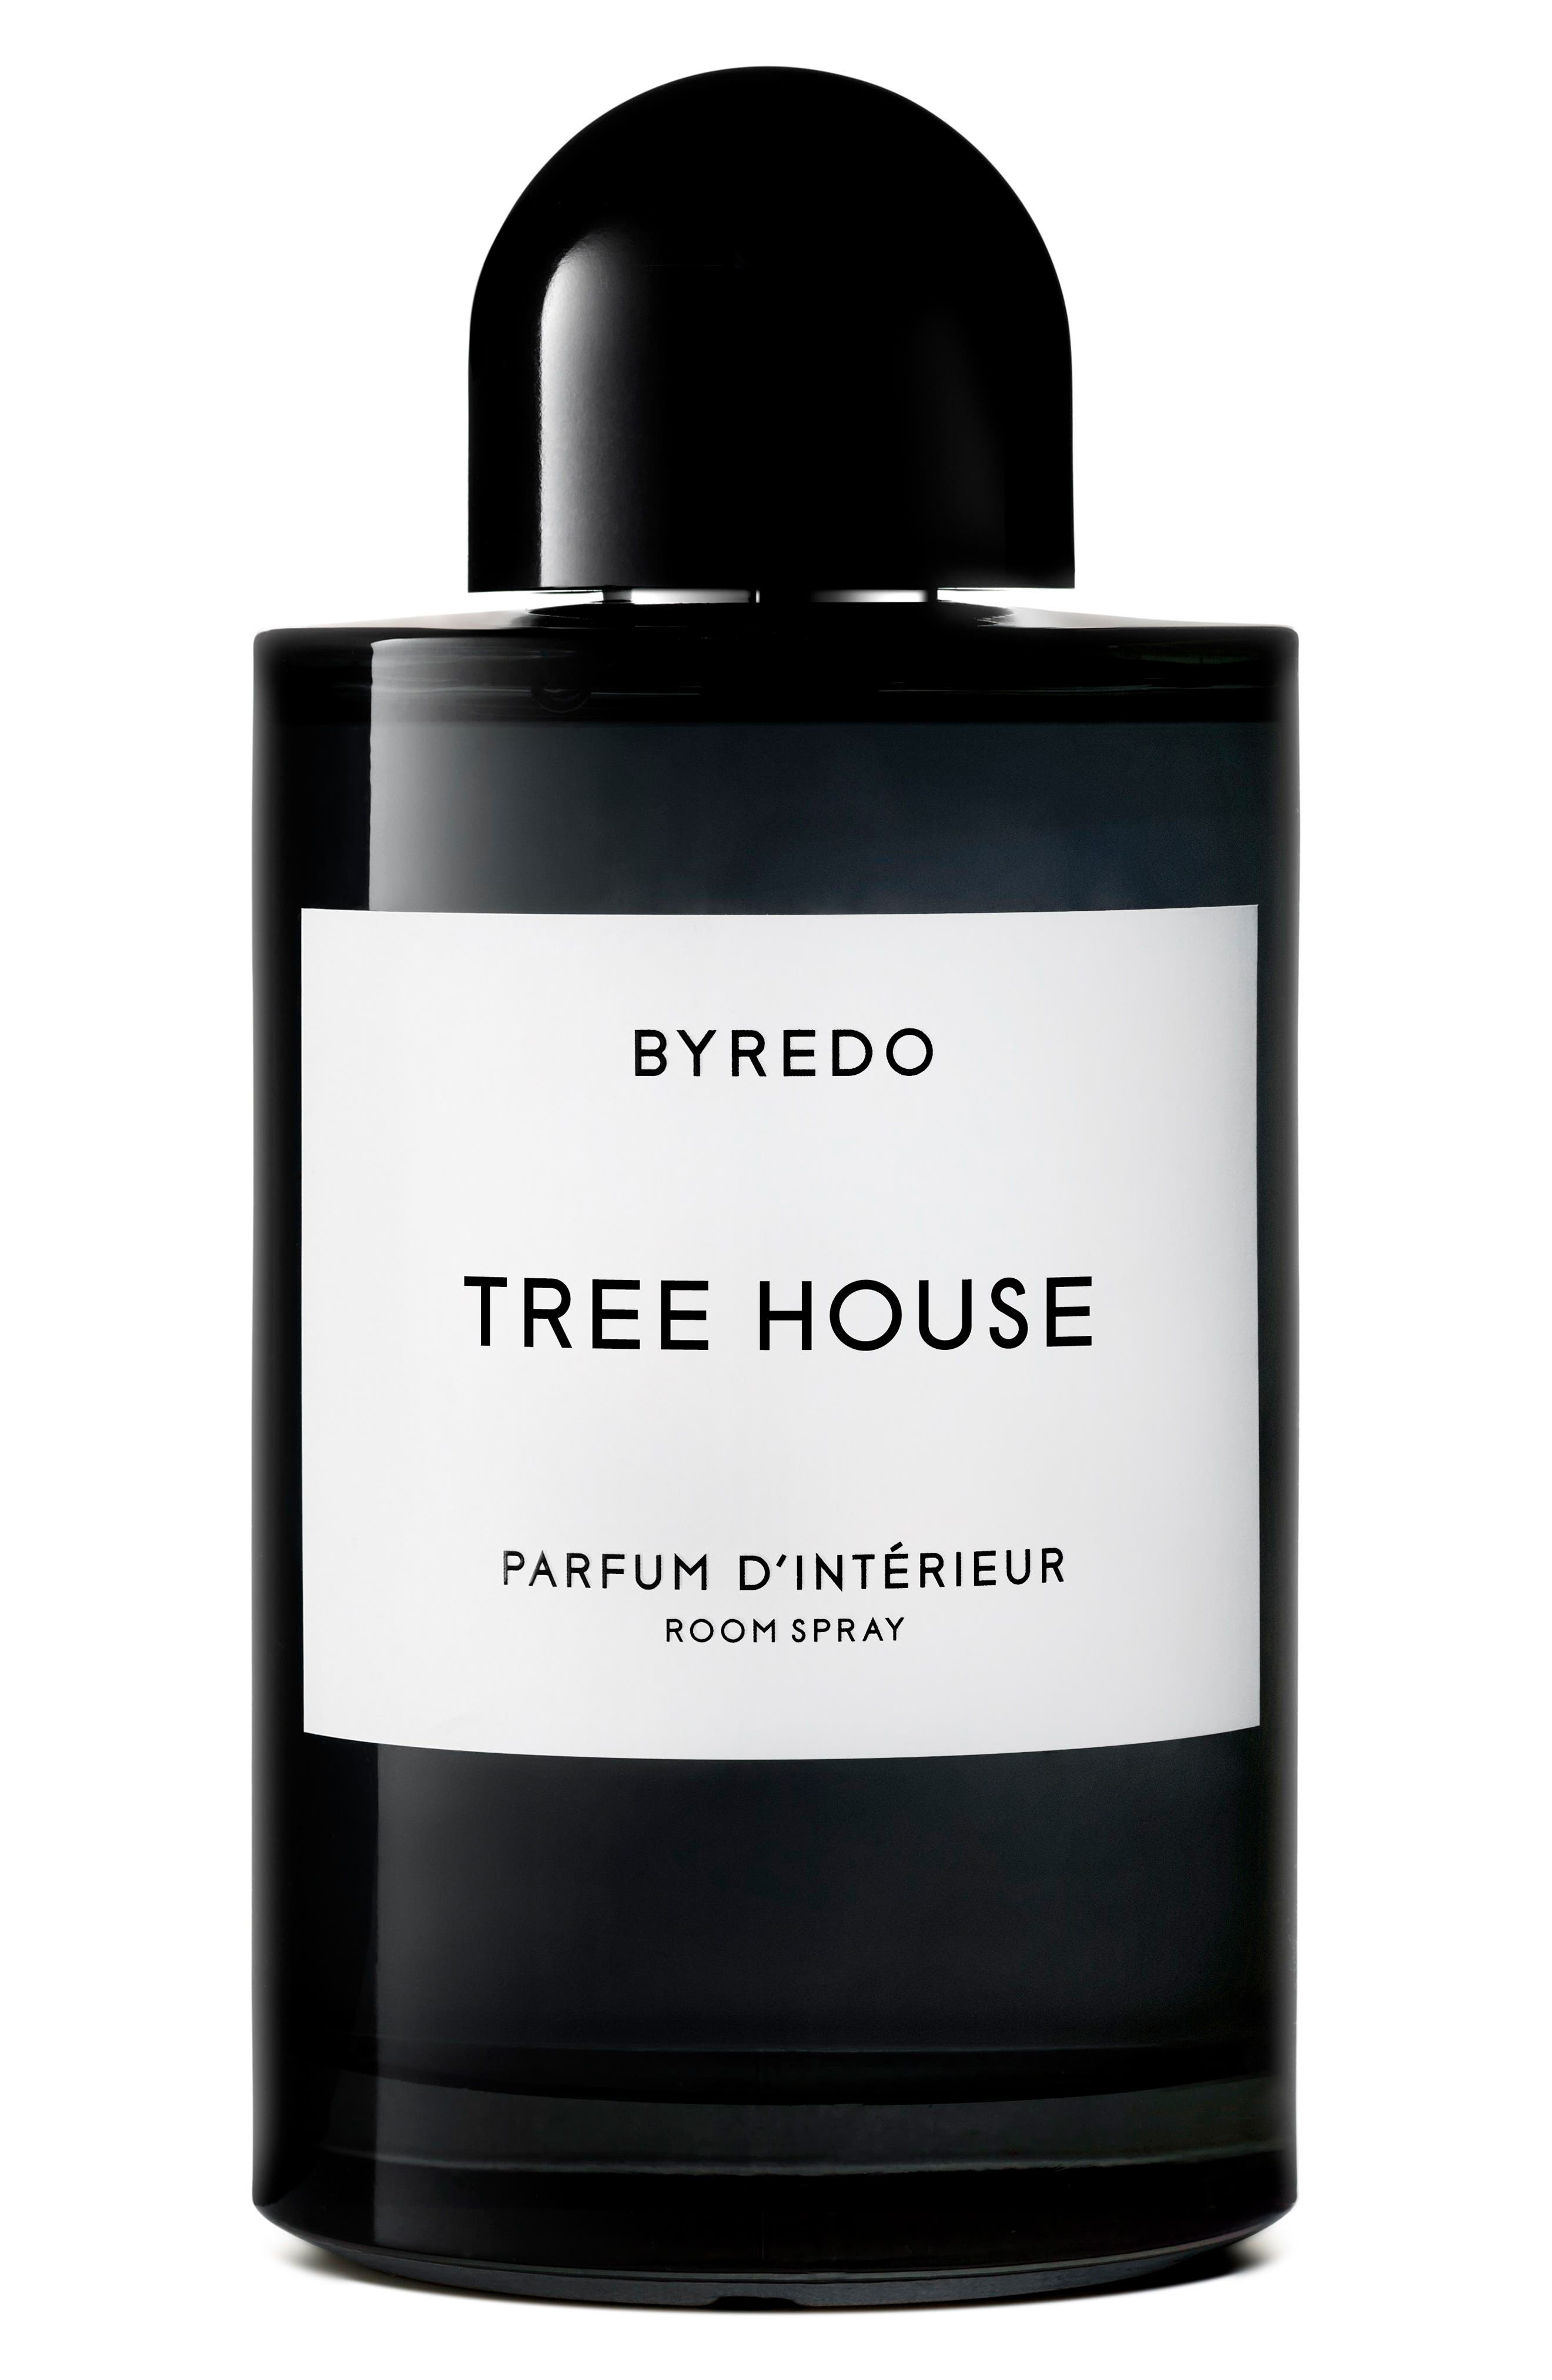 BYREDO Tree House Room Spray